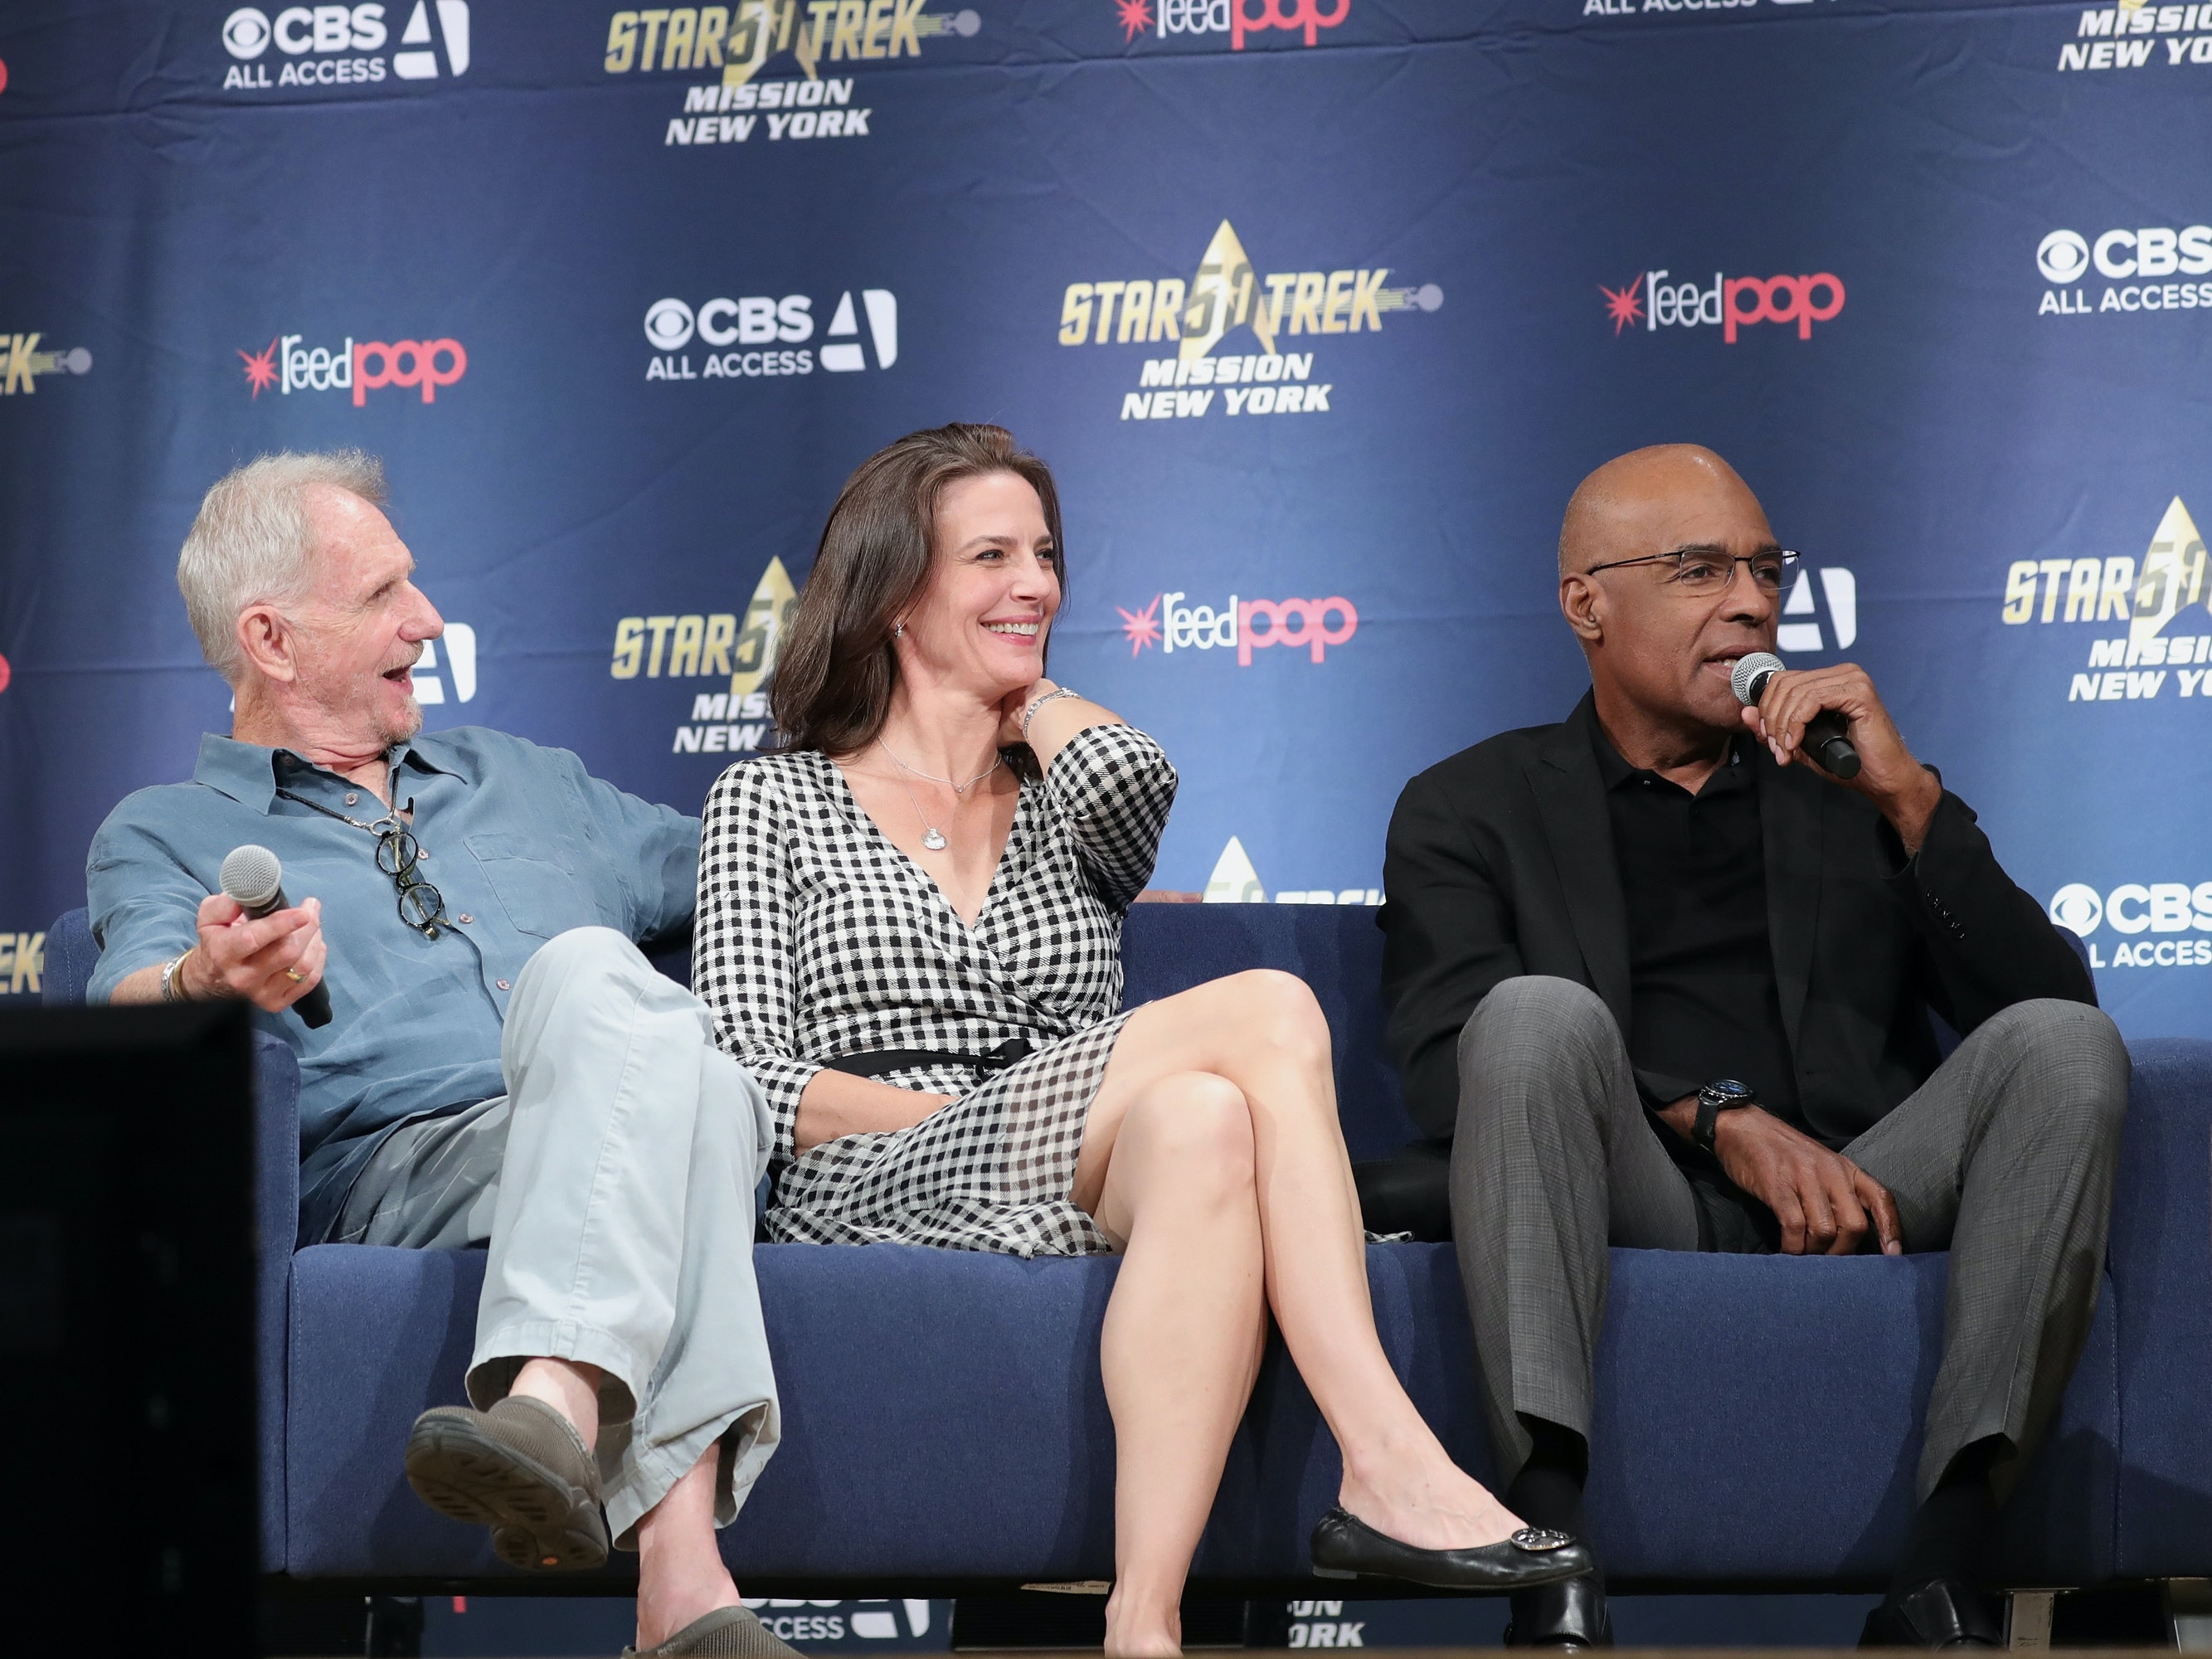 'Star Trek: DS9' Actors Conspired to Make Worf and Dax Hook-Up